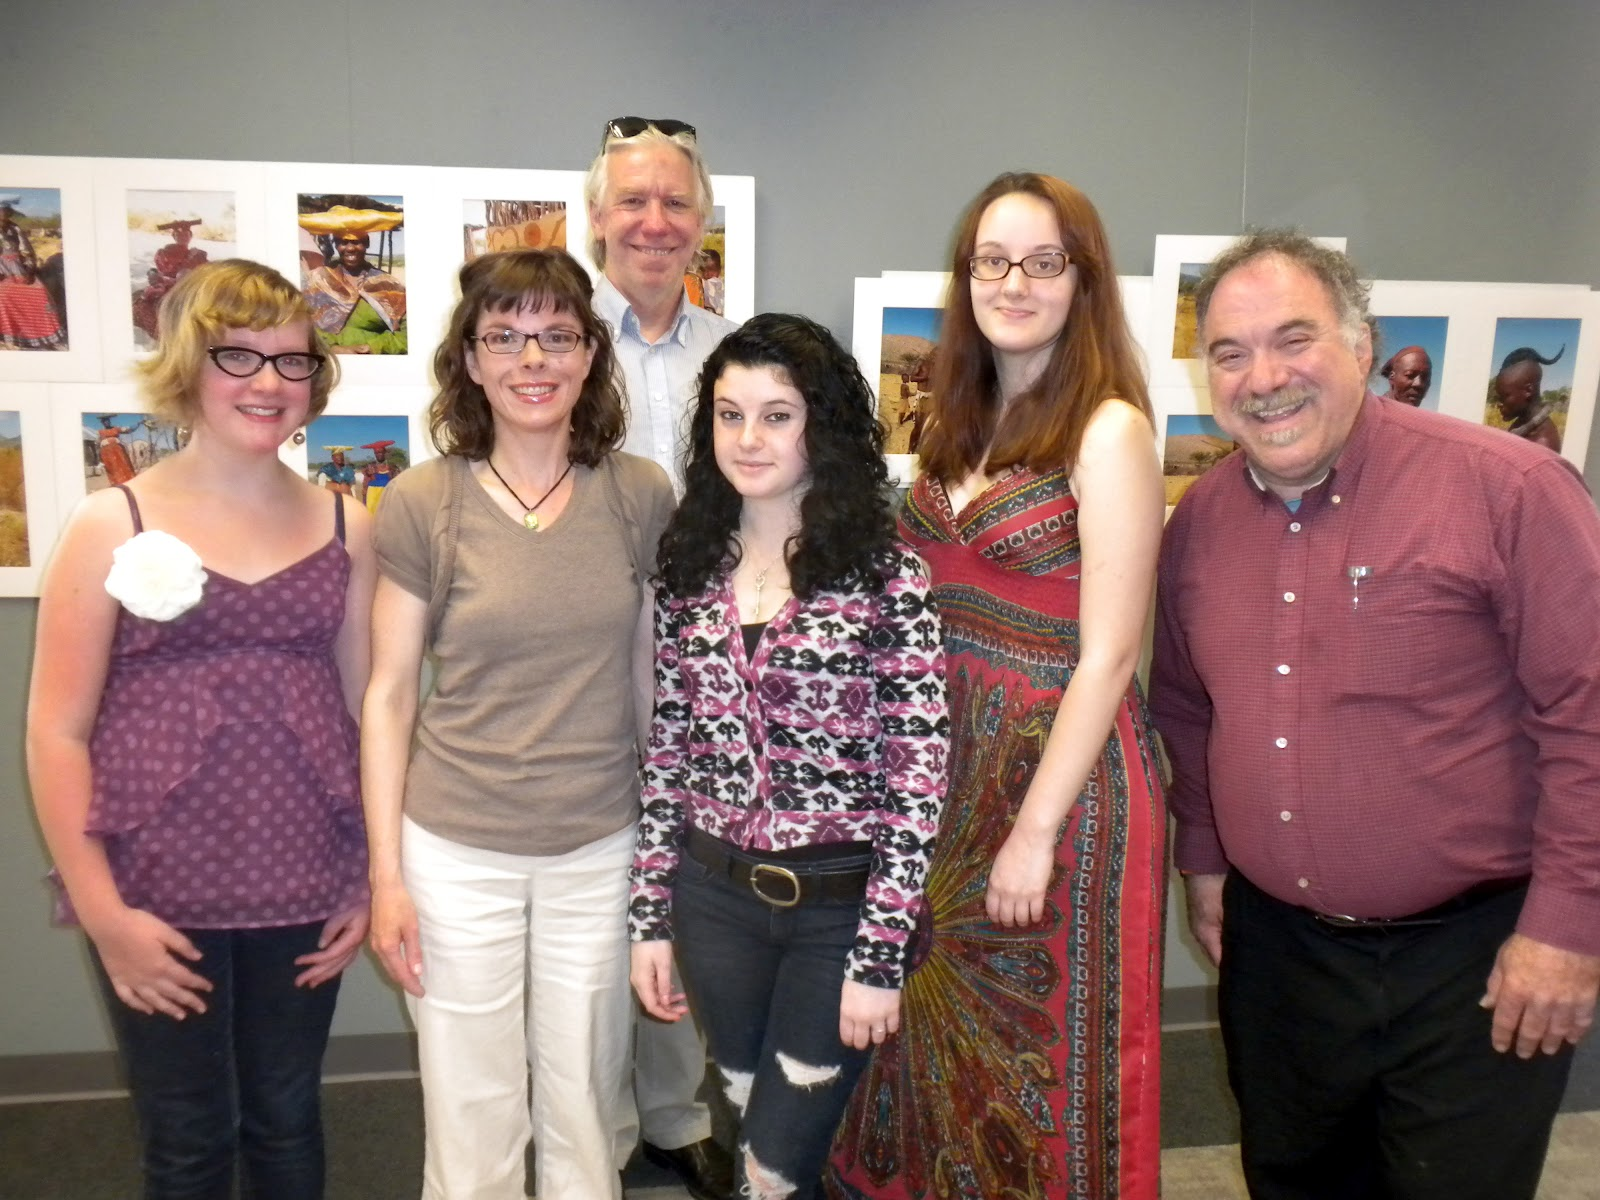 Finalists and Winners of 2012 NHFPL Poetry Contest: